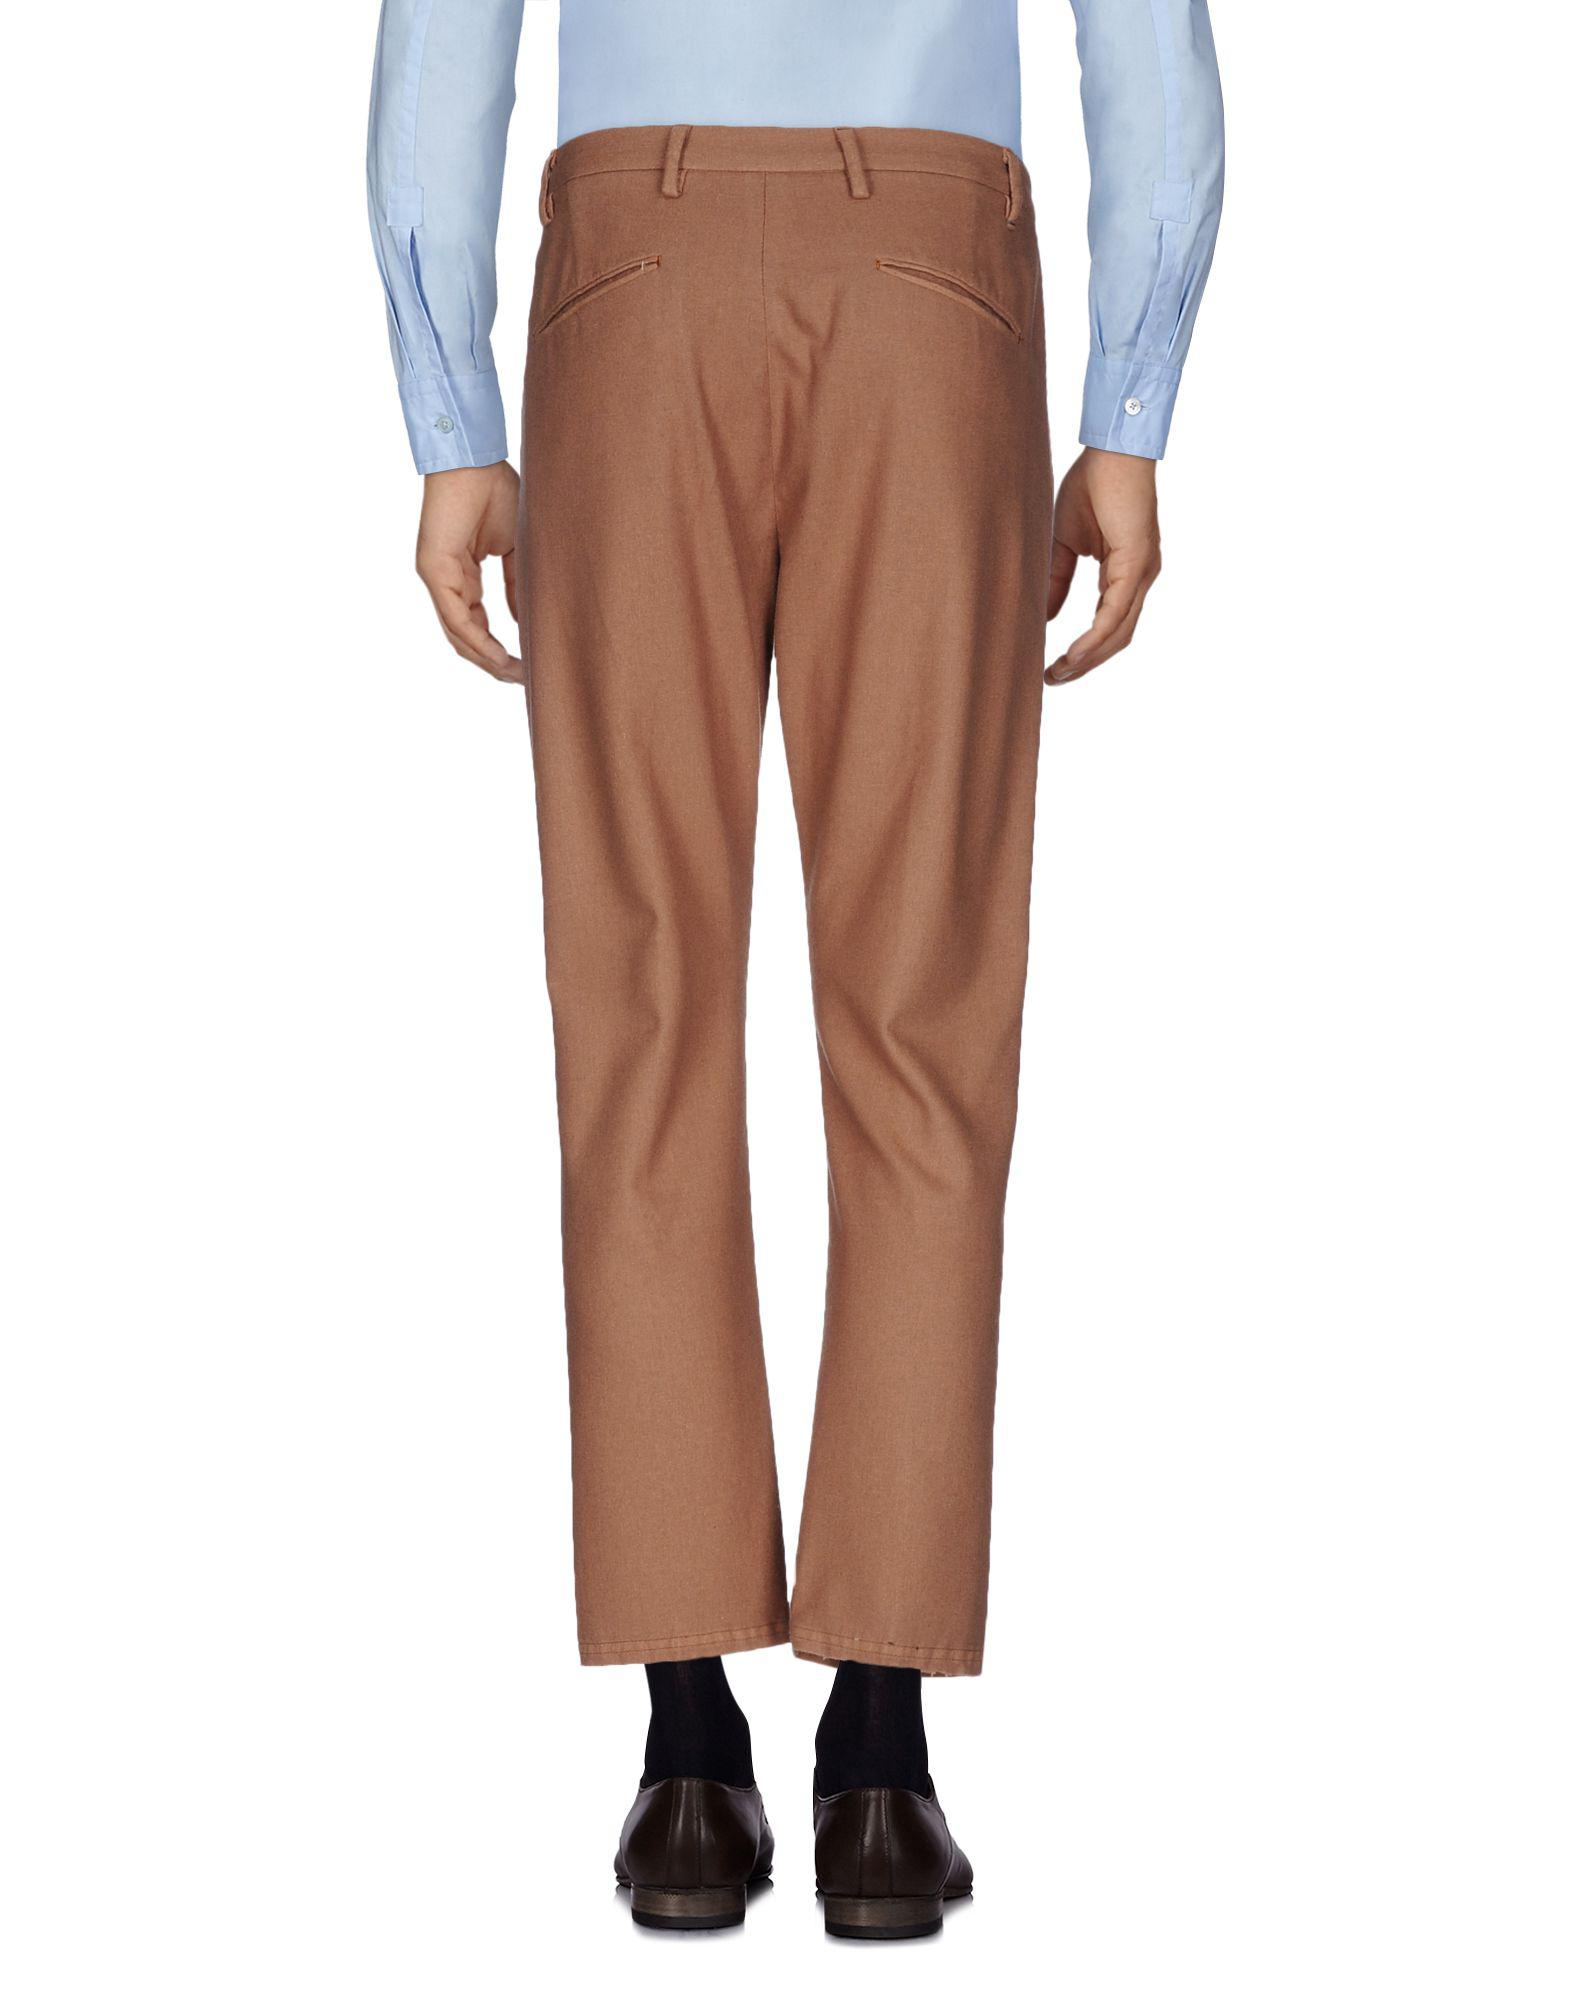 Pence Flannel Casual Trouser in Khaki (Natural) for Men